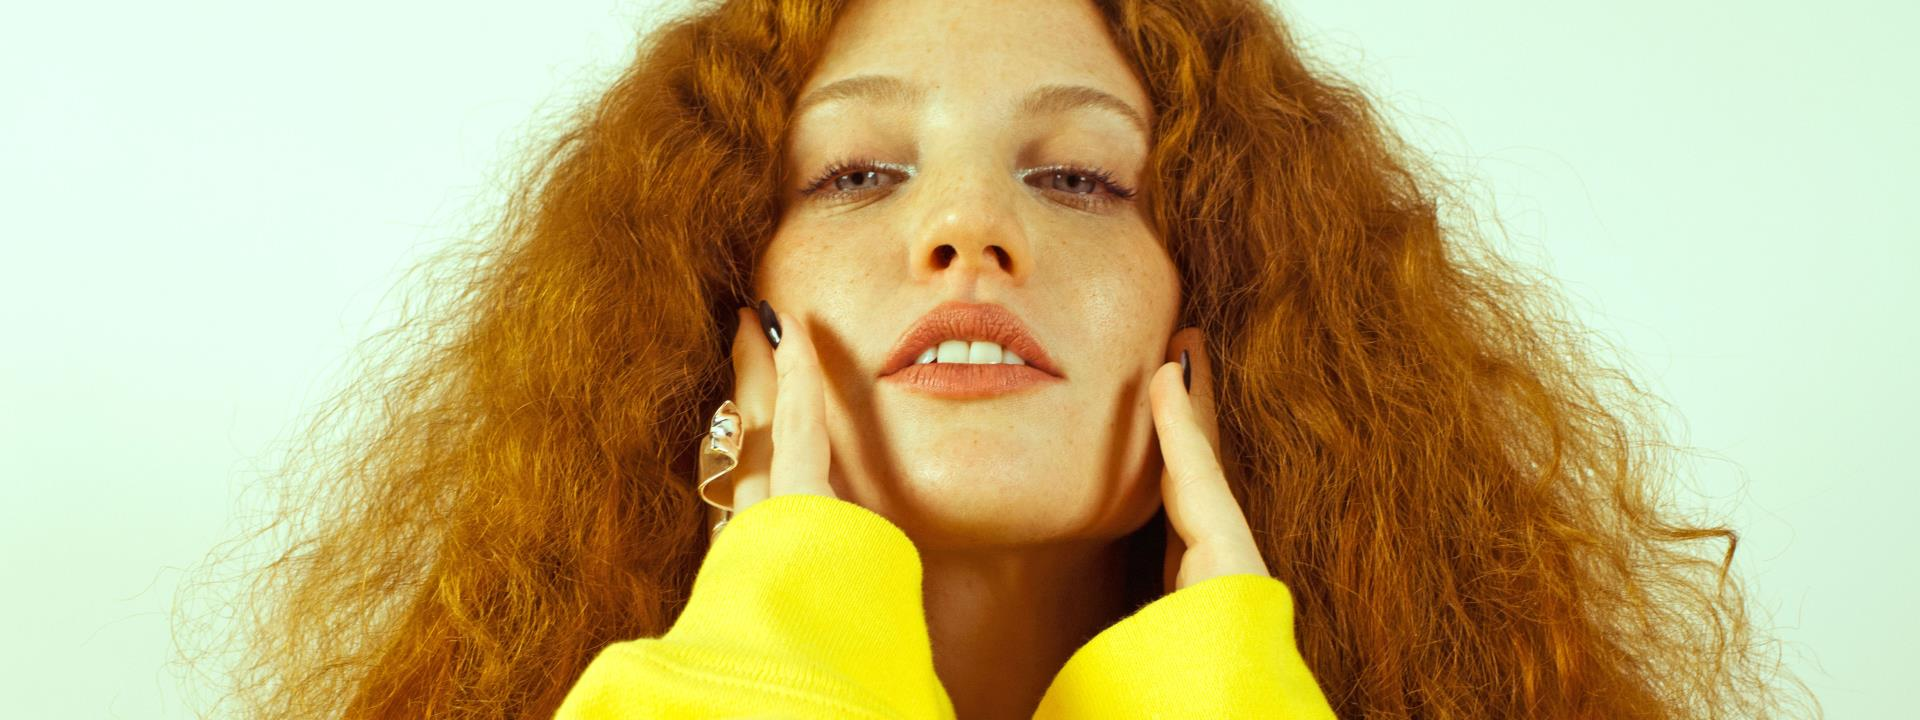 Celebrity Jess Glynne naked (13 photos), Topless, Bikini, Twitter, see through 2006